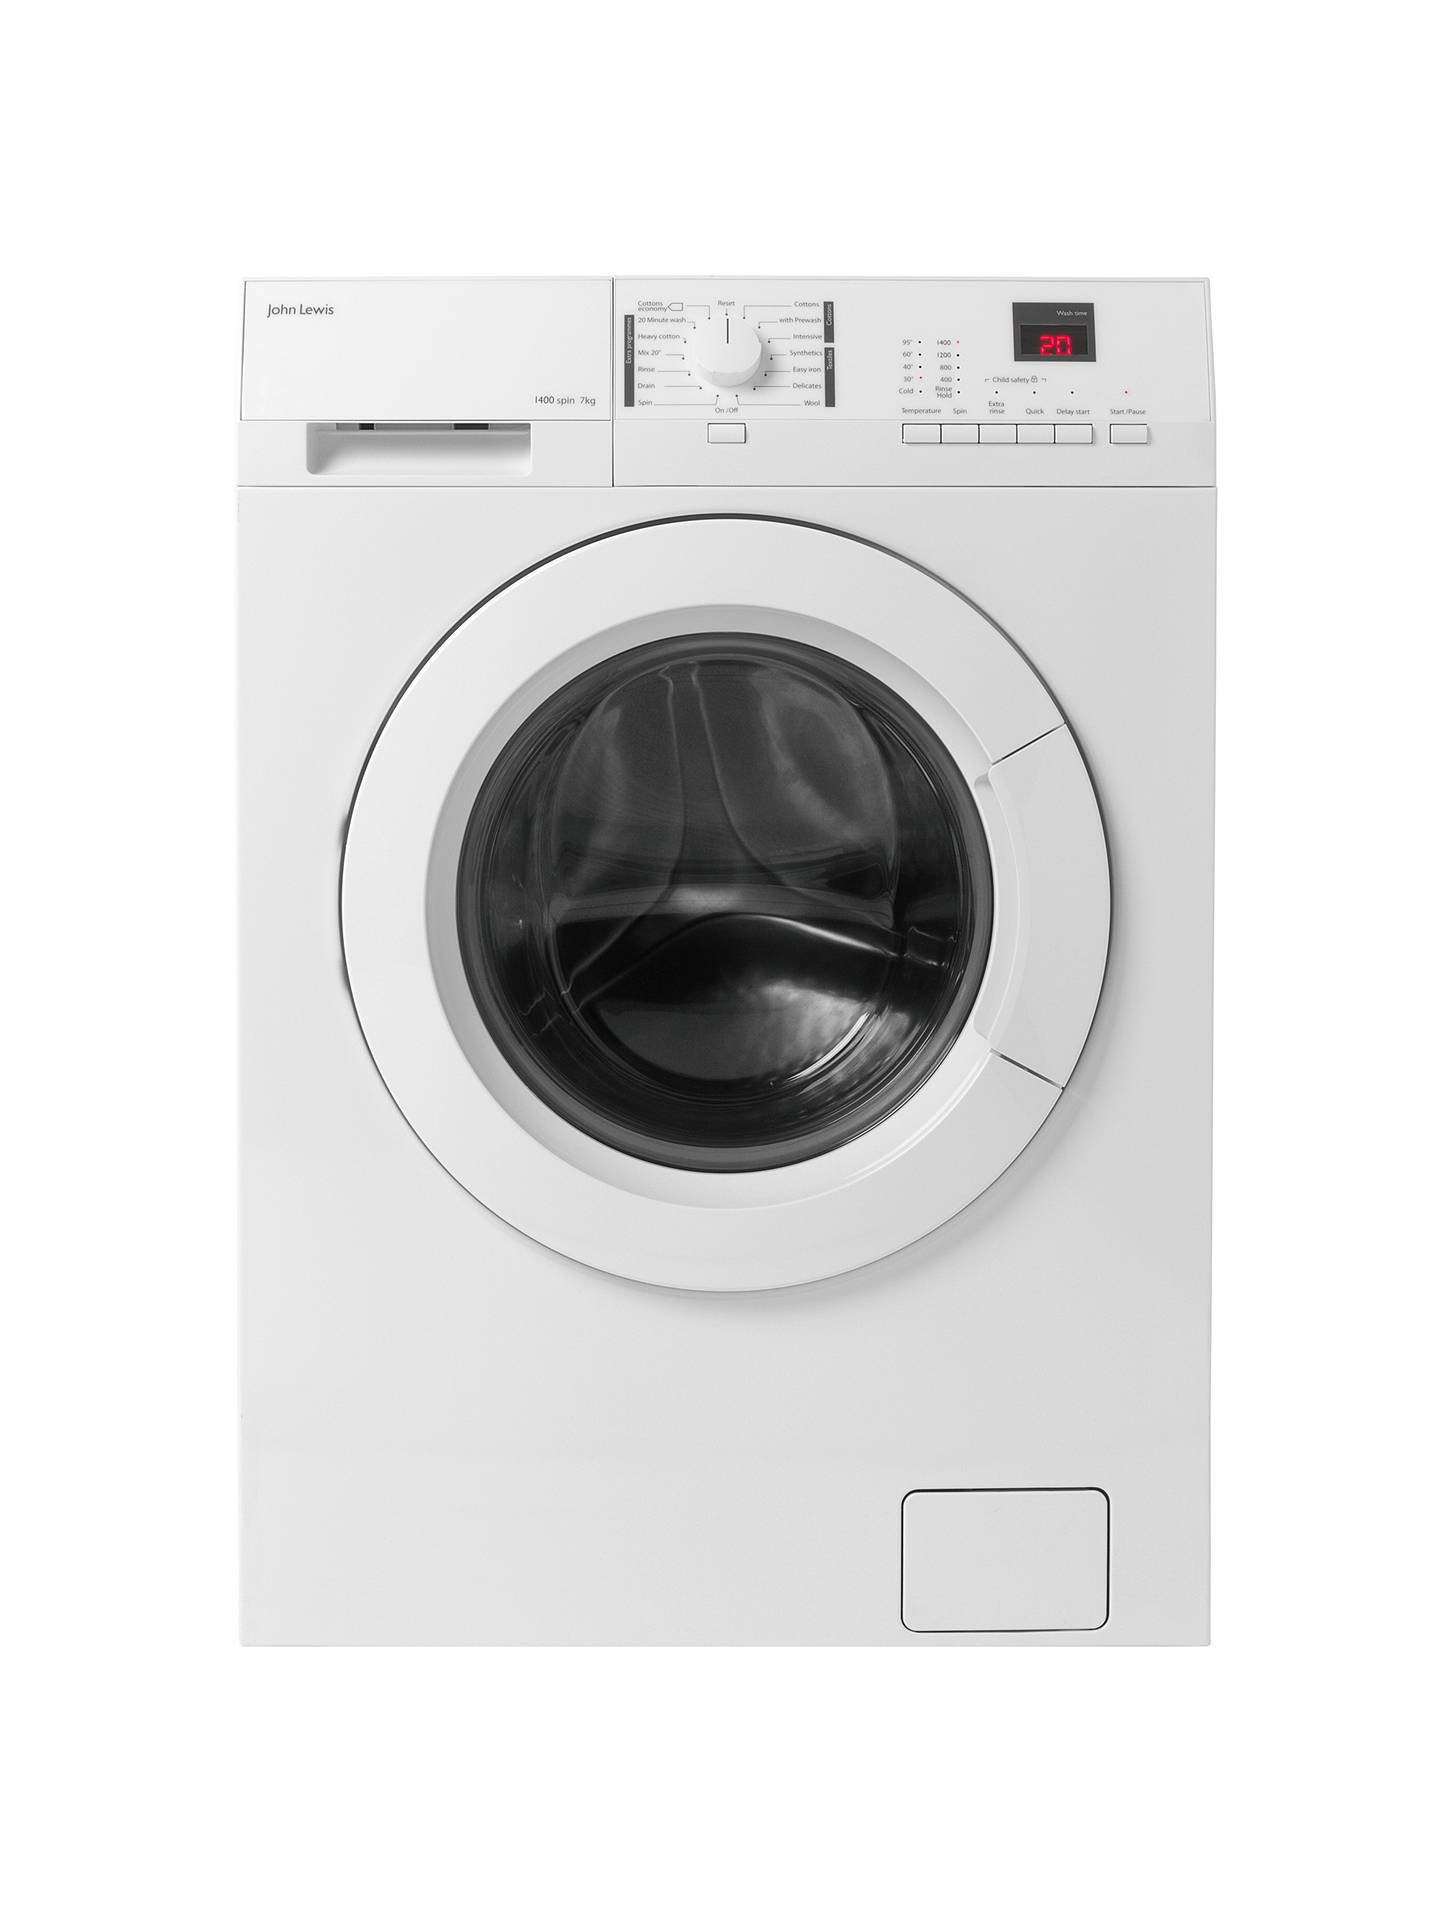 d1497b63b2b Buy John Lewis   Partners JLWM1412 Freestanding Washing Machine